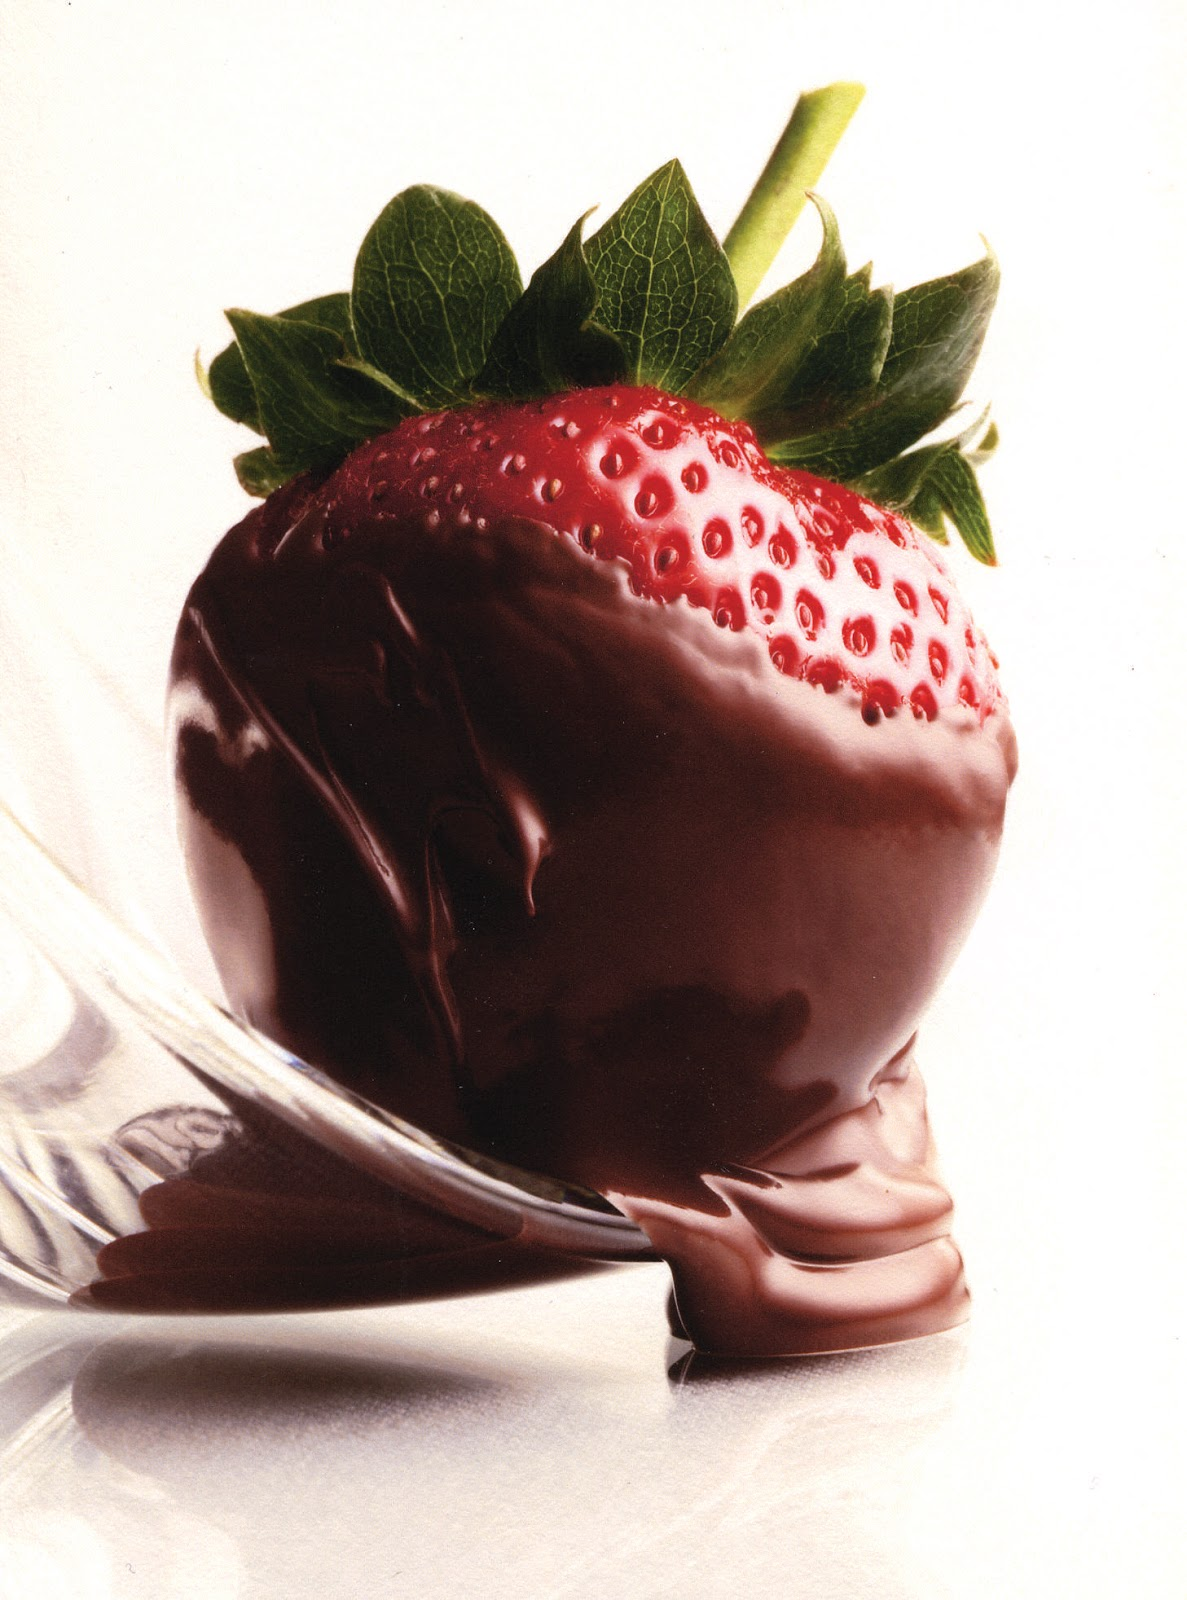 Where Can I Find Chocolate Covered Strawberries